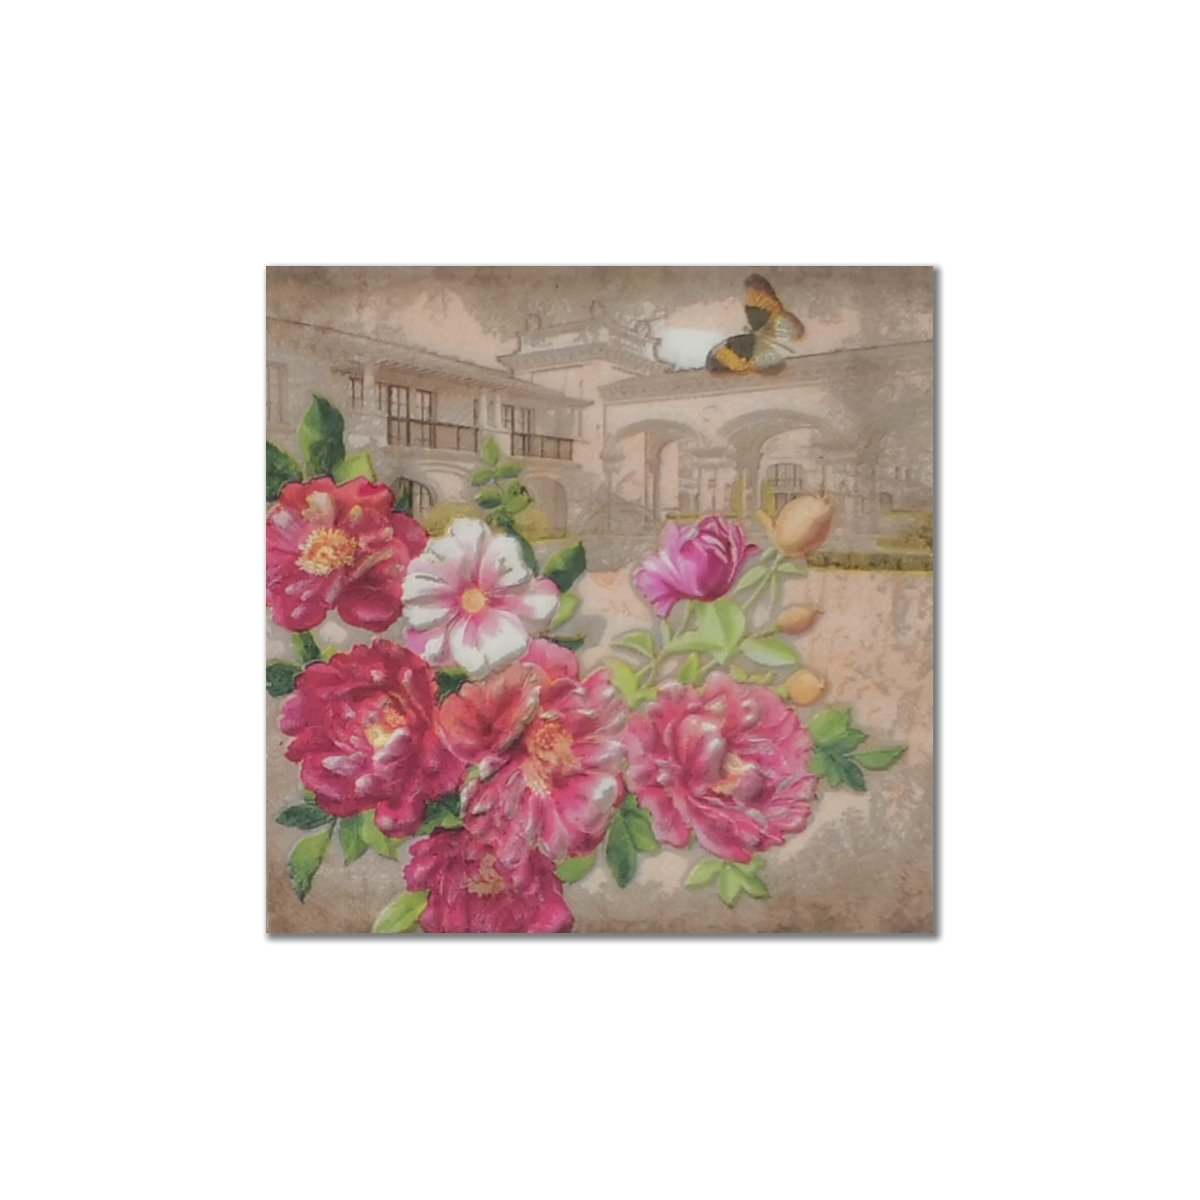 Printed Disposable Paper Napkins (3 Assorted Designs, 20-Count Each, Total: 60-Count) by Boudicca's (Image #4)